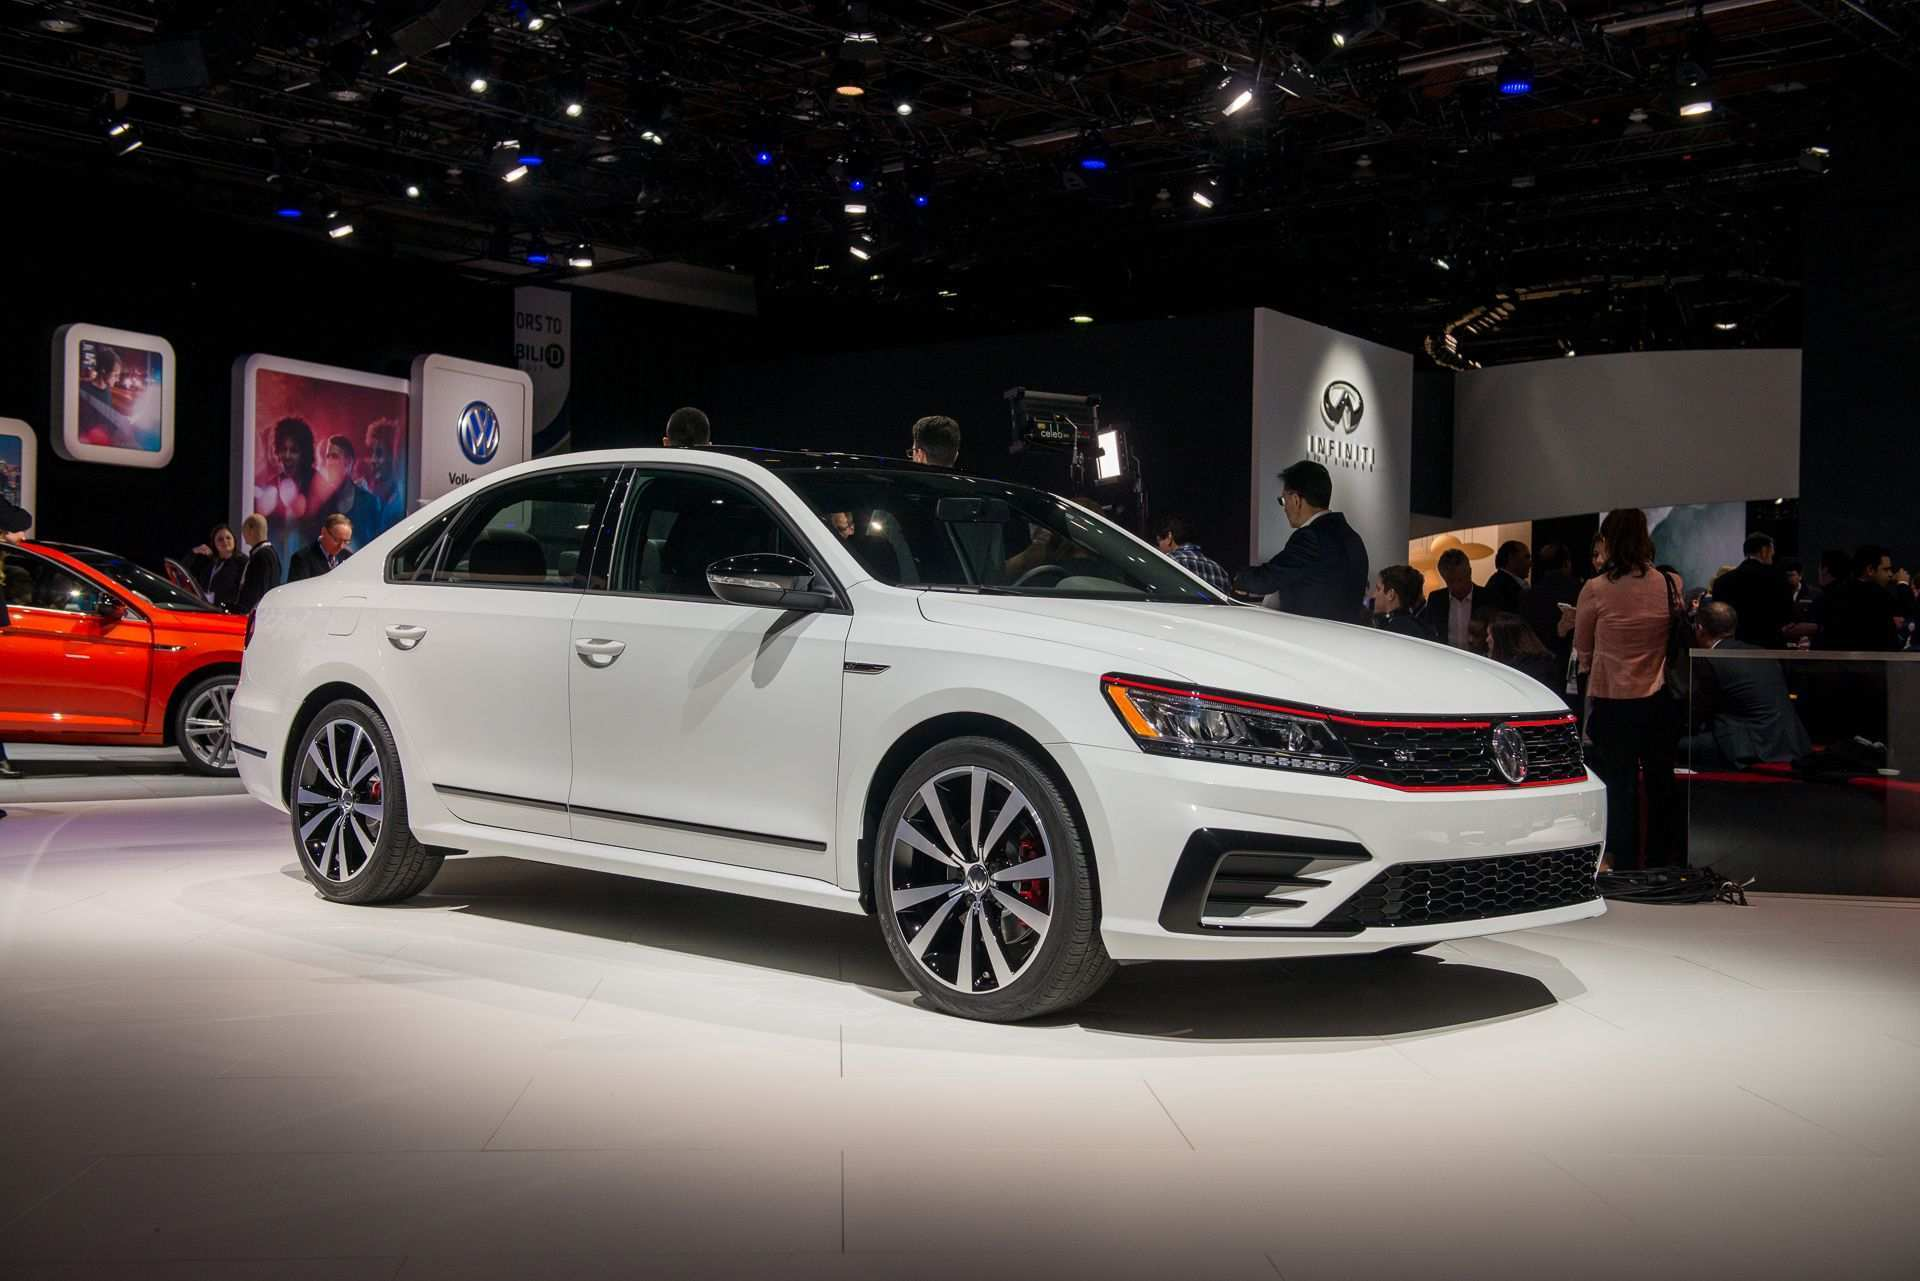 59 The Vw Passat Gt 2019 History